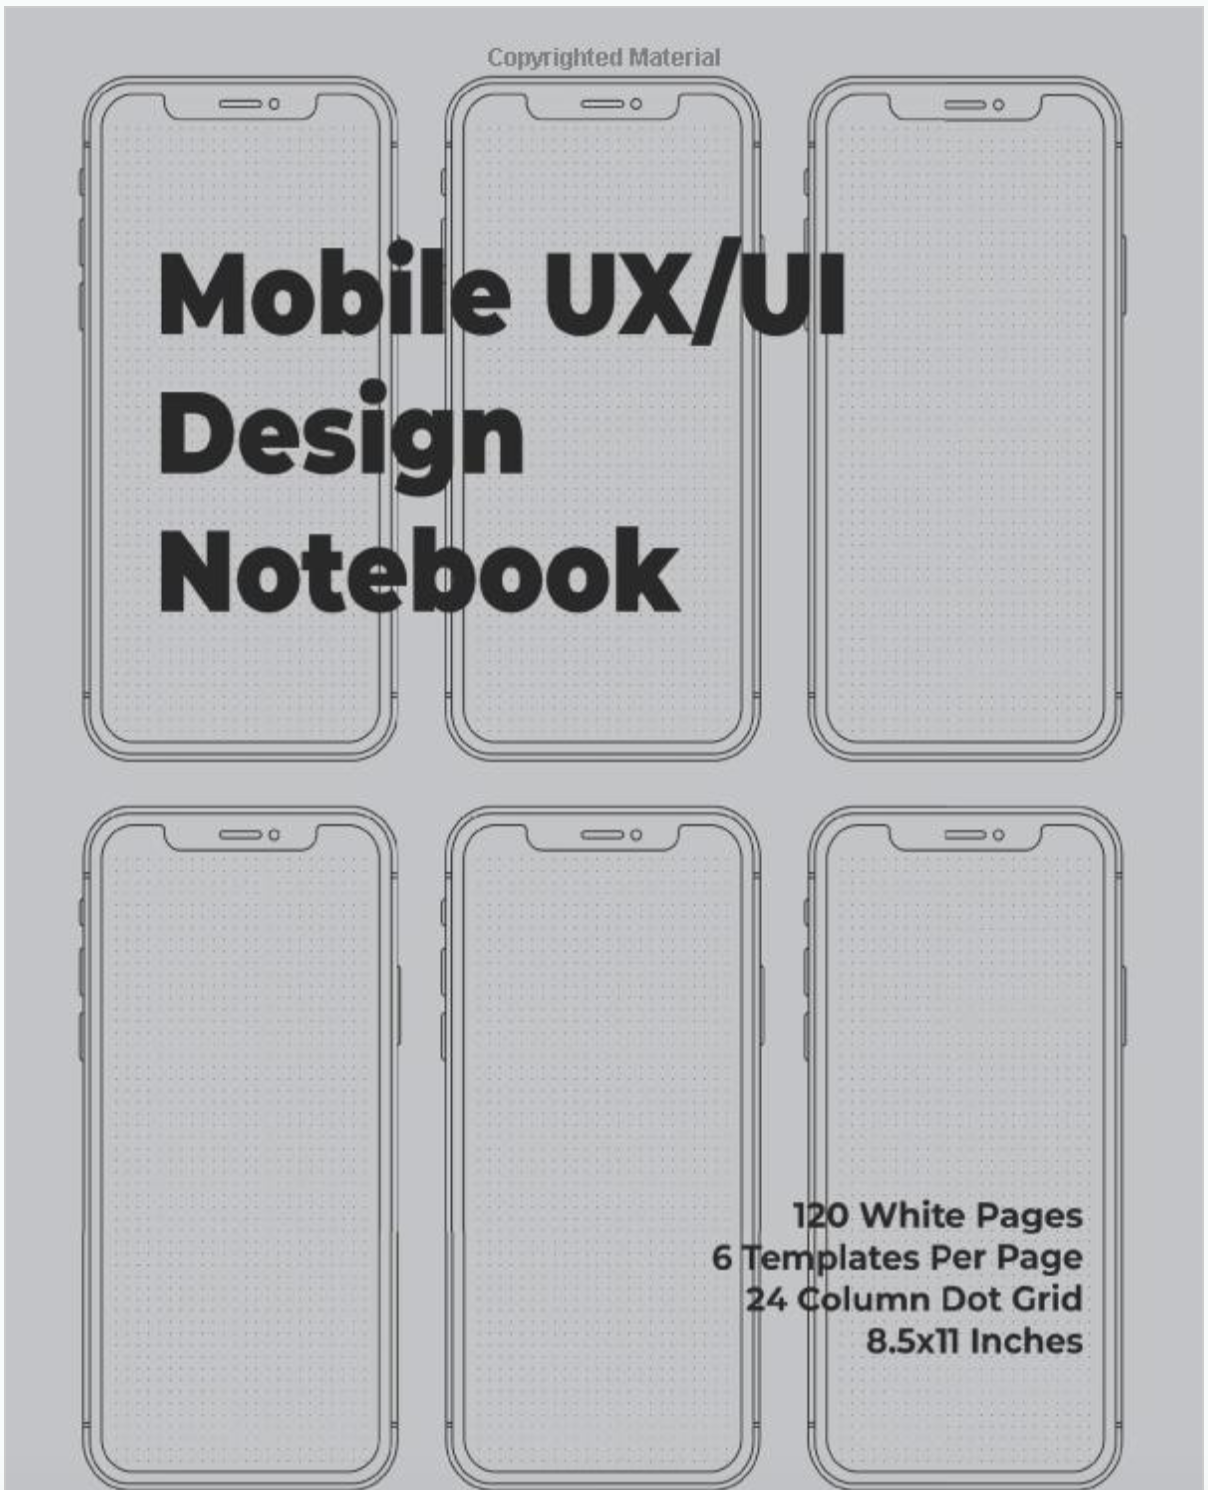 Mobile UX/UI Design Notebook